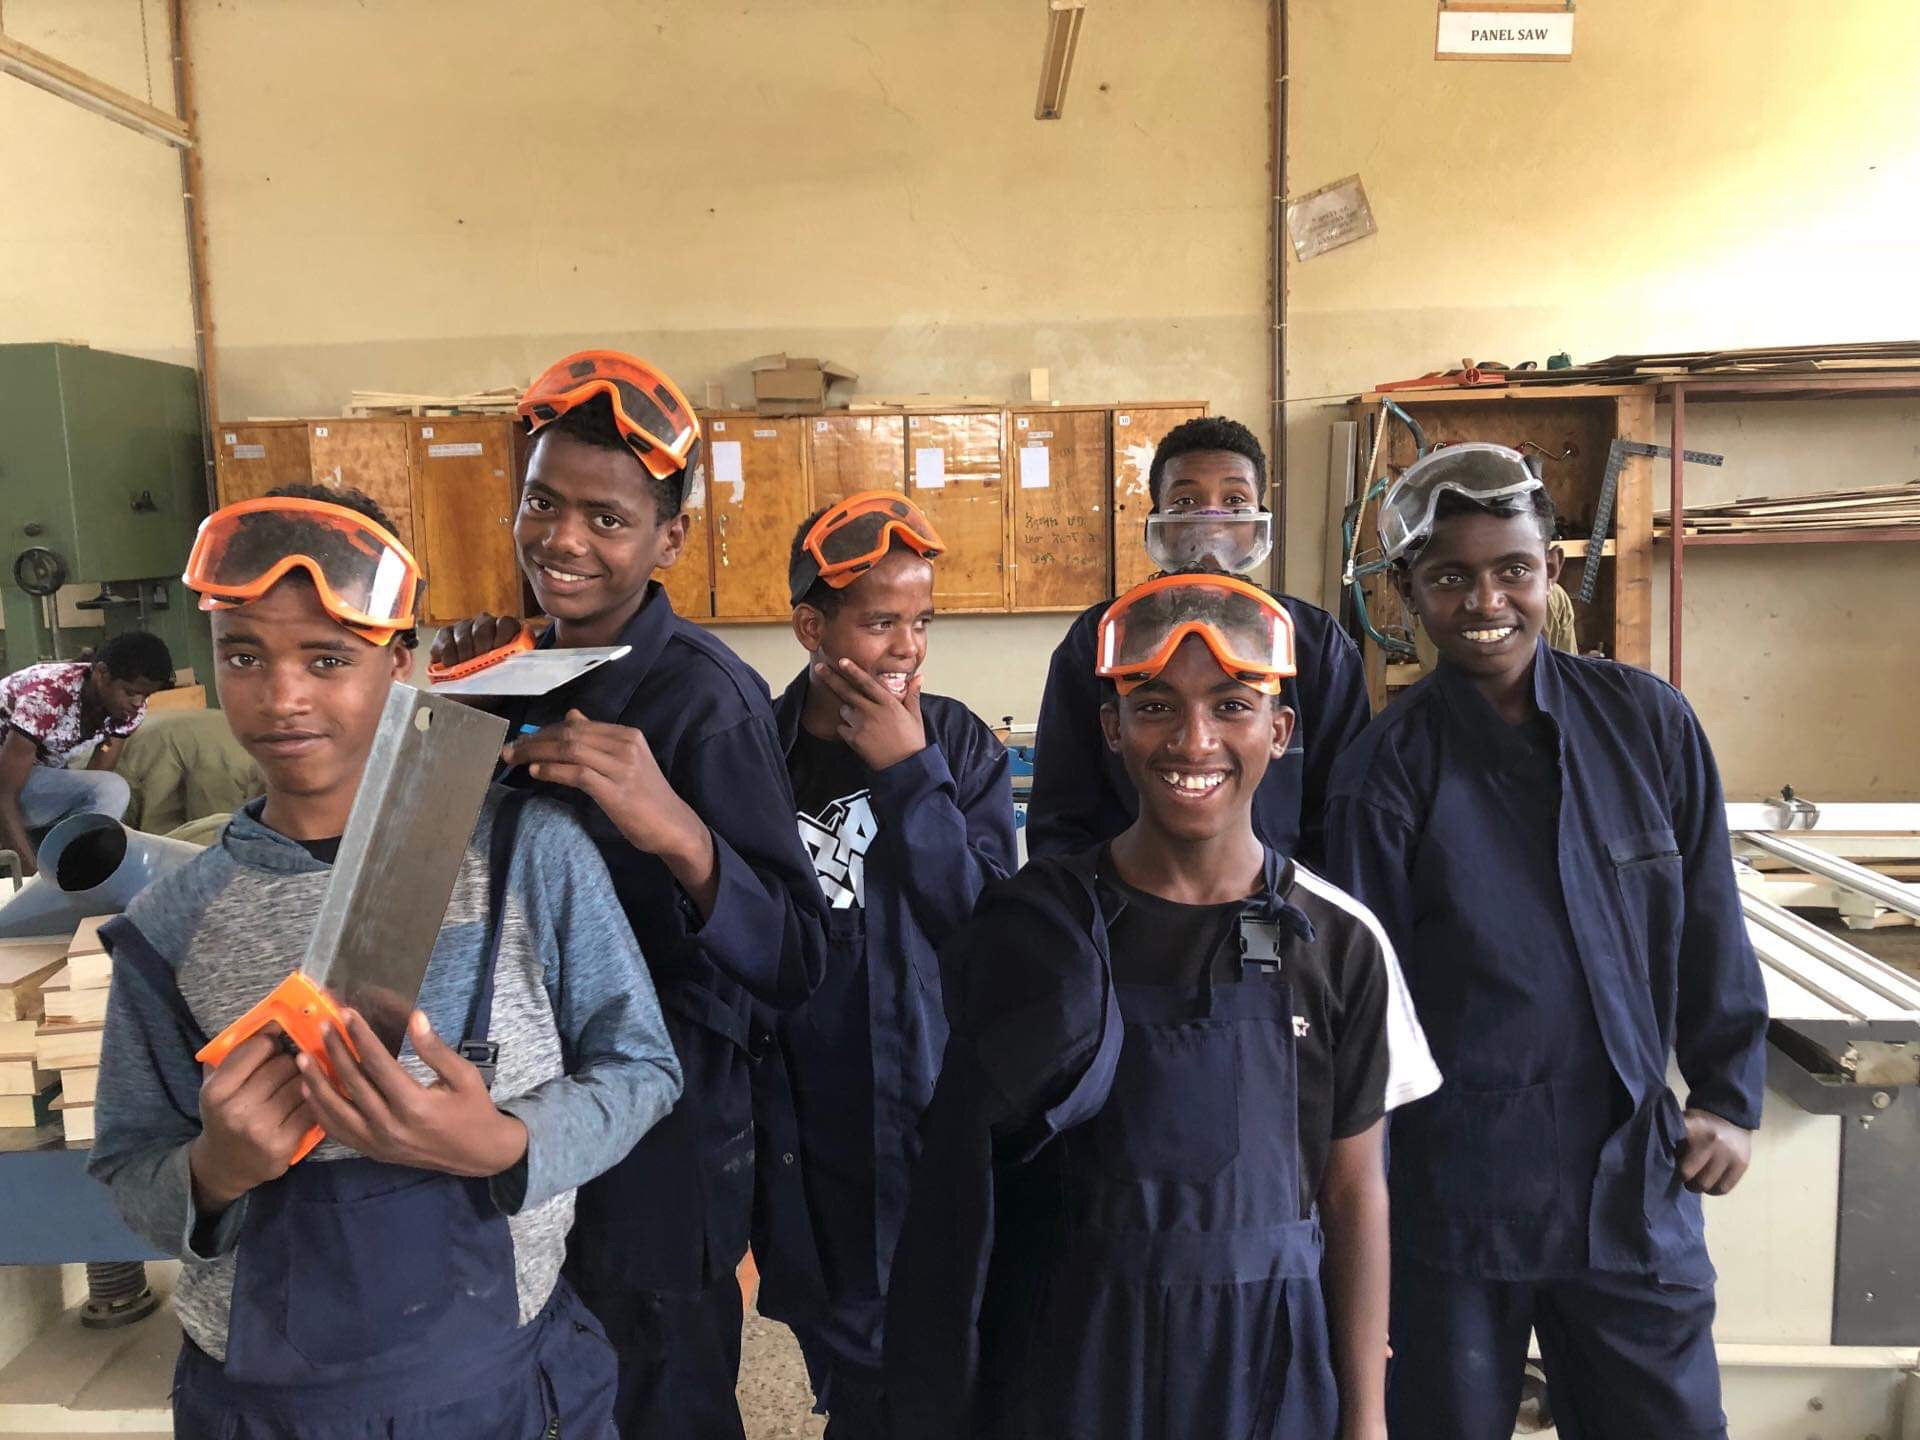 LIFE SKILLS - Learning trade work, that will last them a lifetime